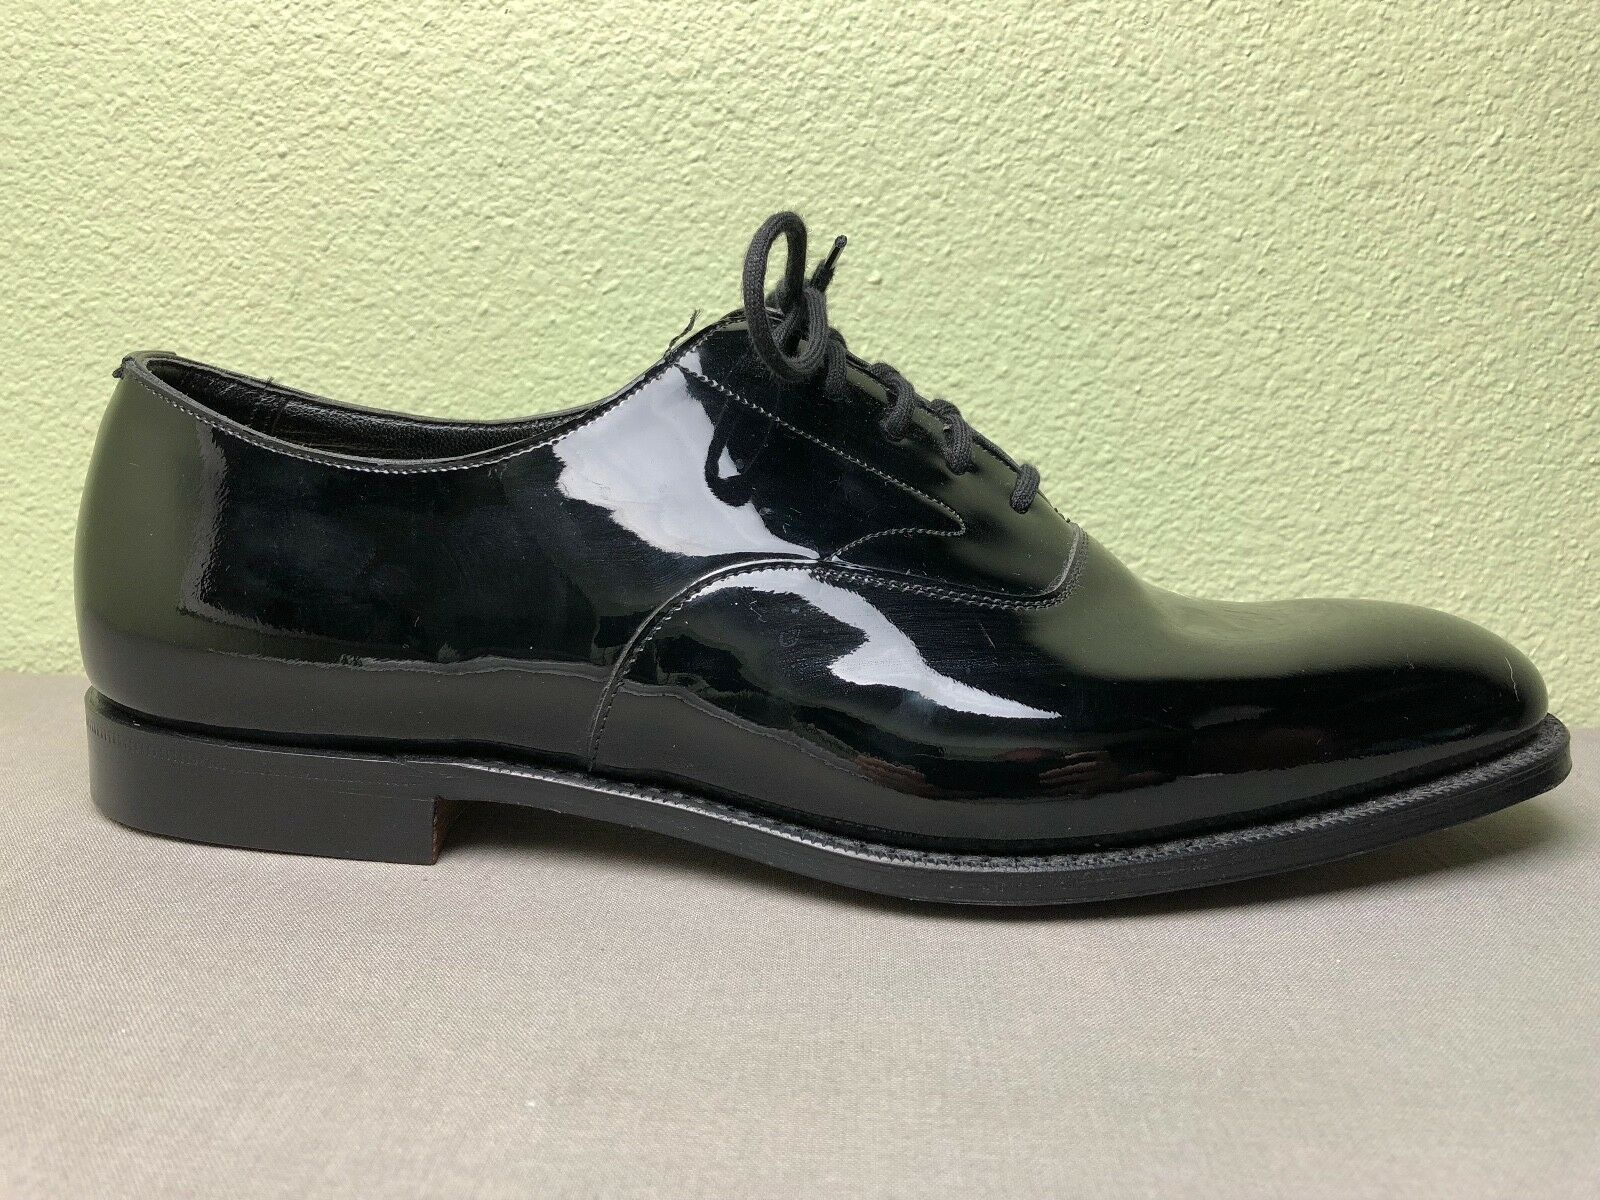 398 Peal & Co Brooks Bredhers Single Black Patent Leather Dress shoes Amputee 12